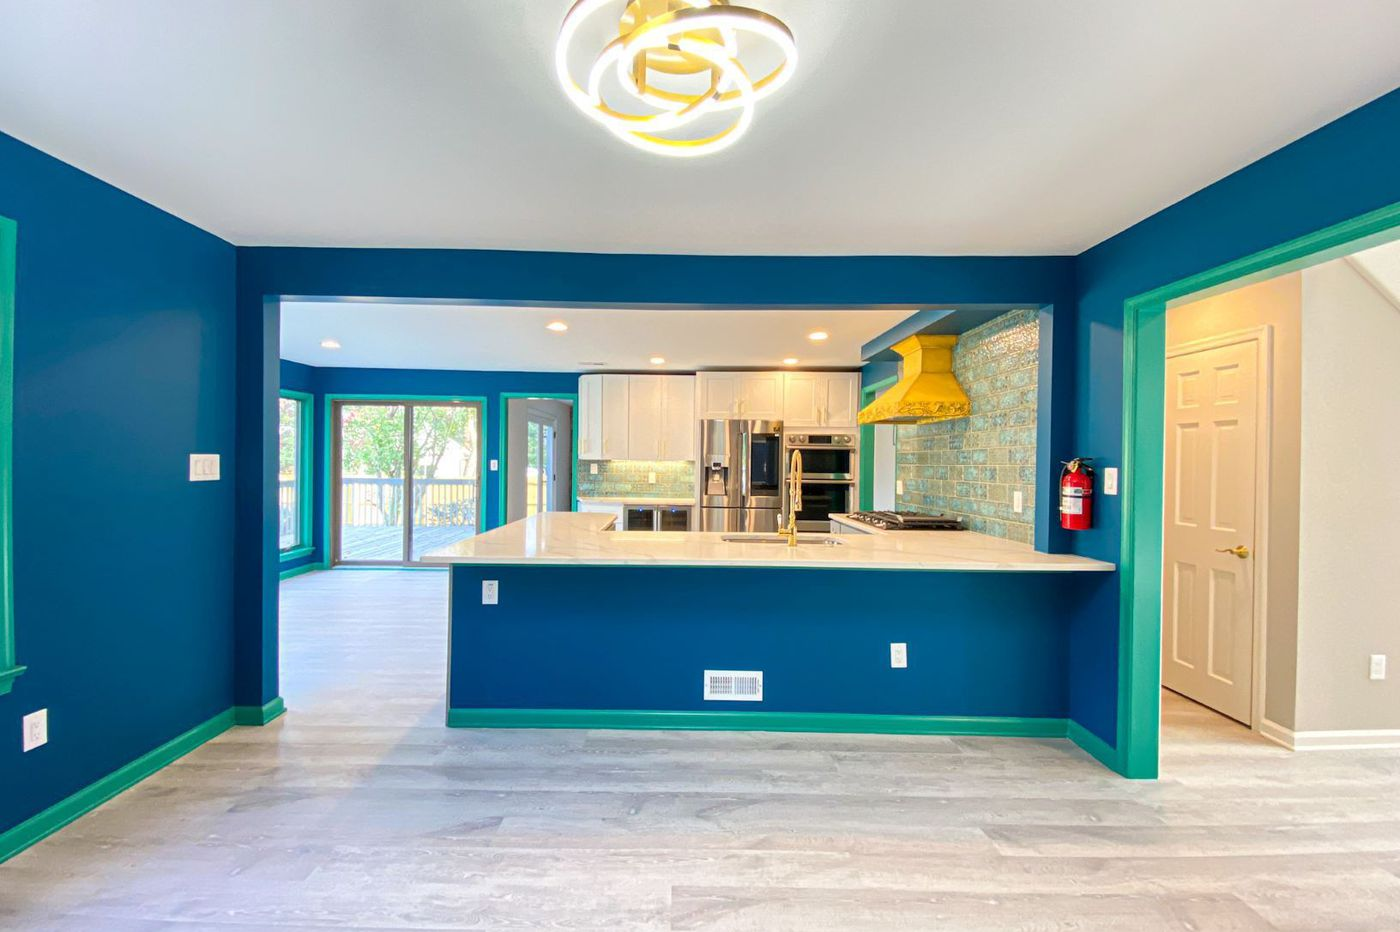 On the market: A four-bedroom contemporary home in Cherry Hill for $639,000